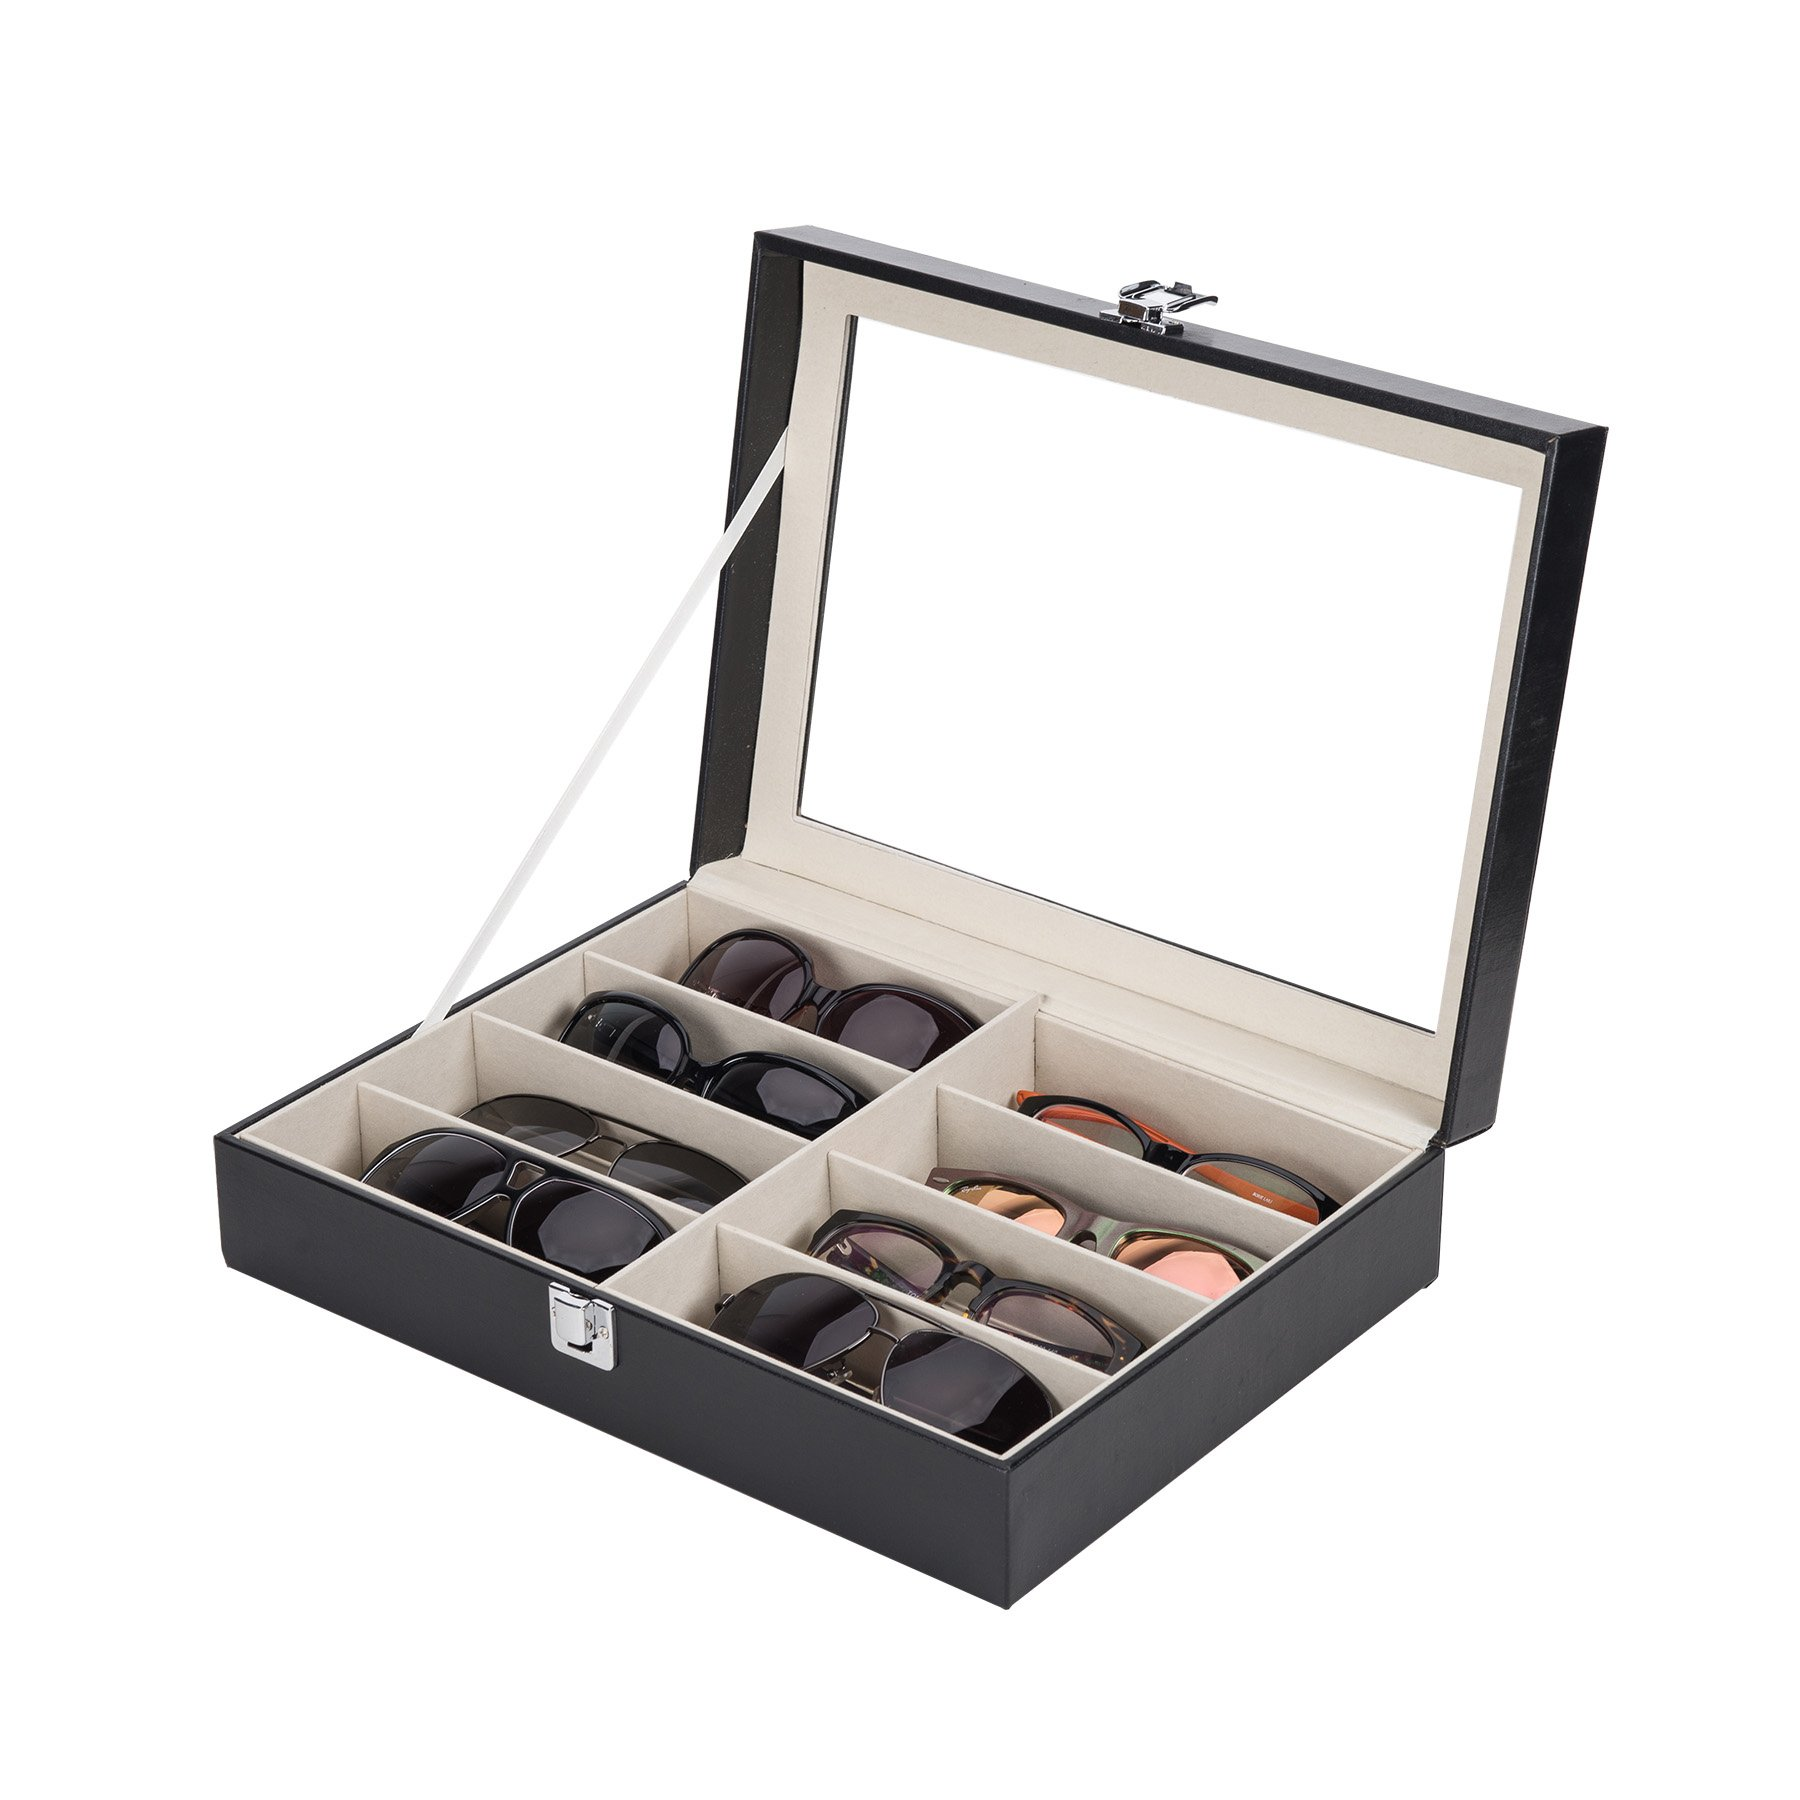 CO-Z Leather Multi Sunglasses Organizer for Women Men, Multiple Eyeglasses Eyewear Display Case, Sunglasses Collection Case, Sunglass Glasses Storage Holder Box with 8 Slots (8 Compartments)